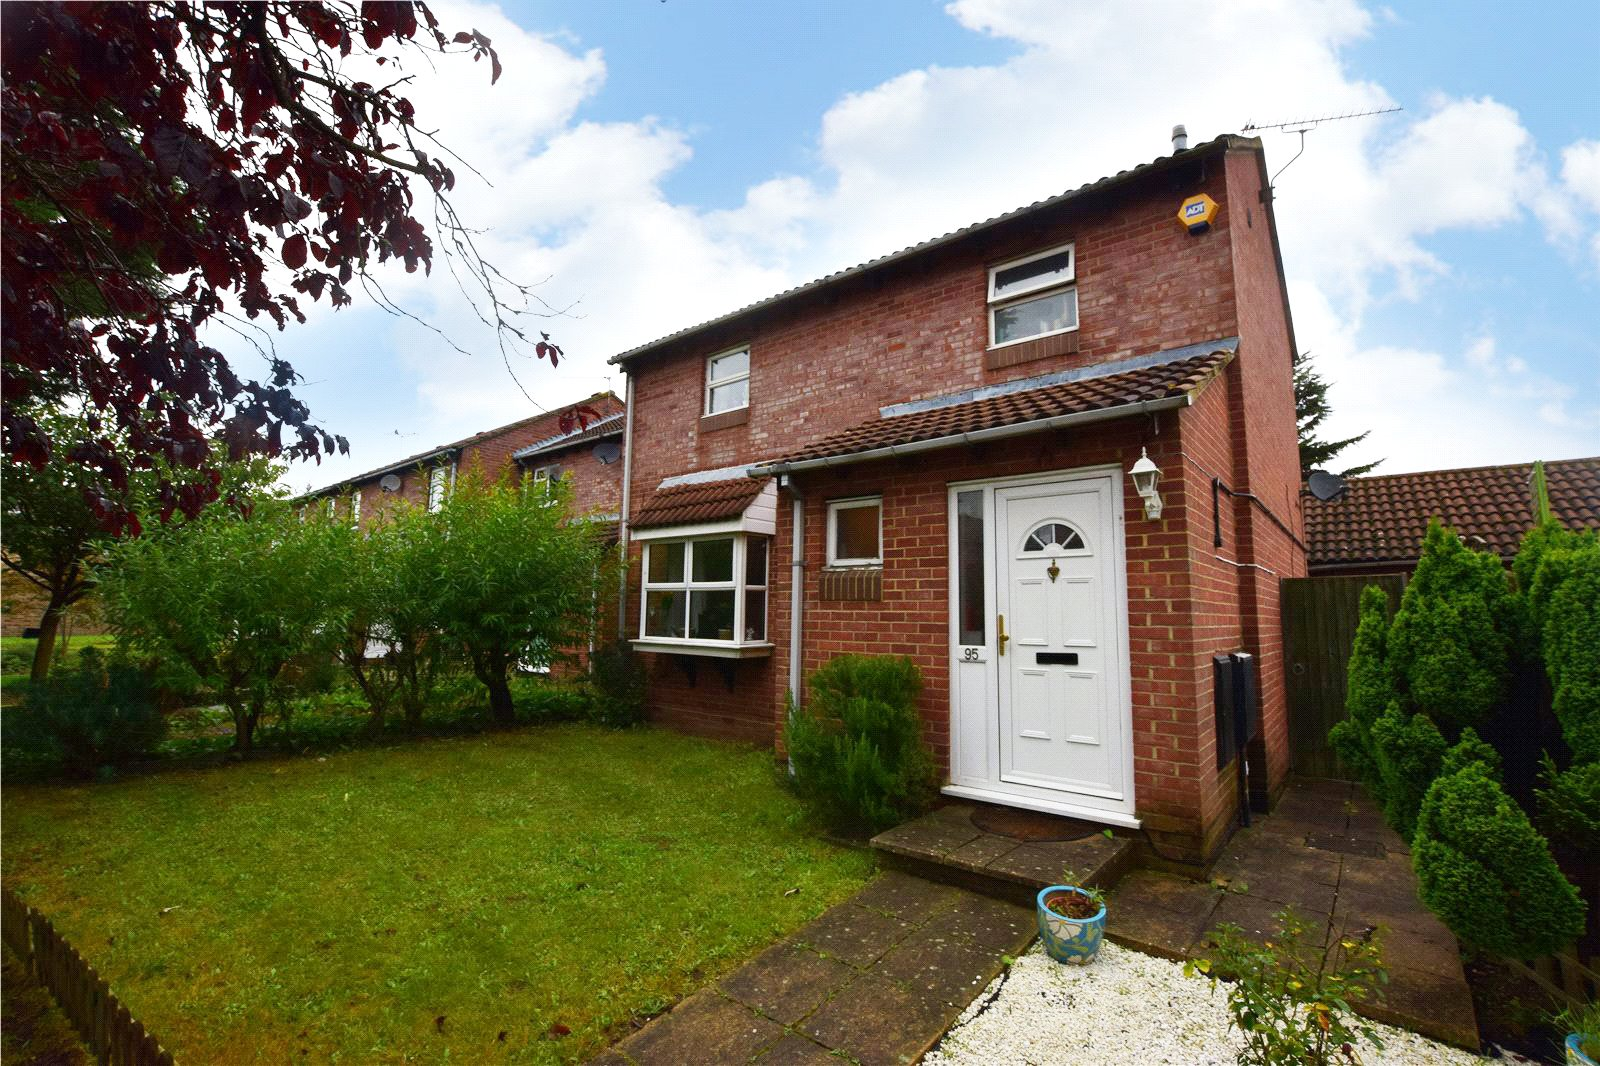 3 Bedrooms End Of Terrace House for sale in The Delph, Lower Earley, Reading, Berkshire, RG6